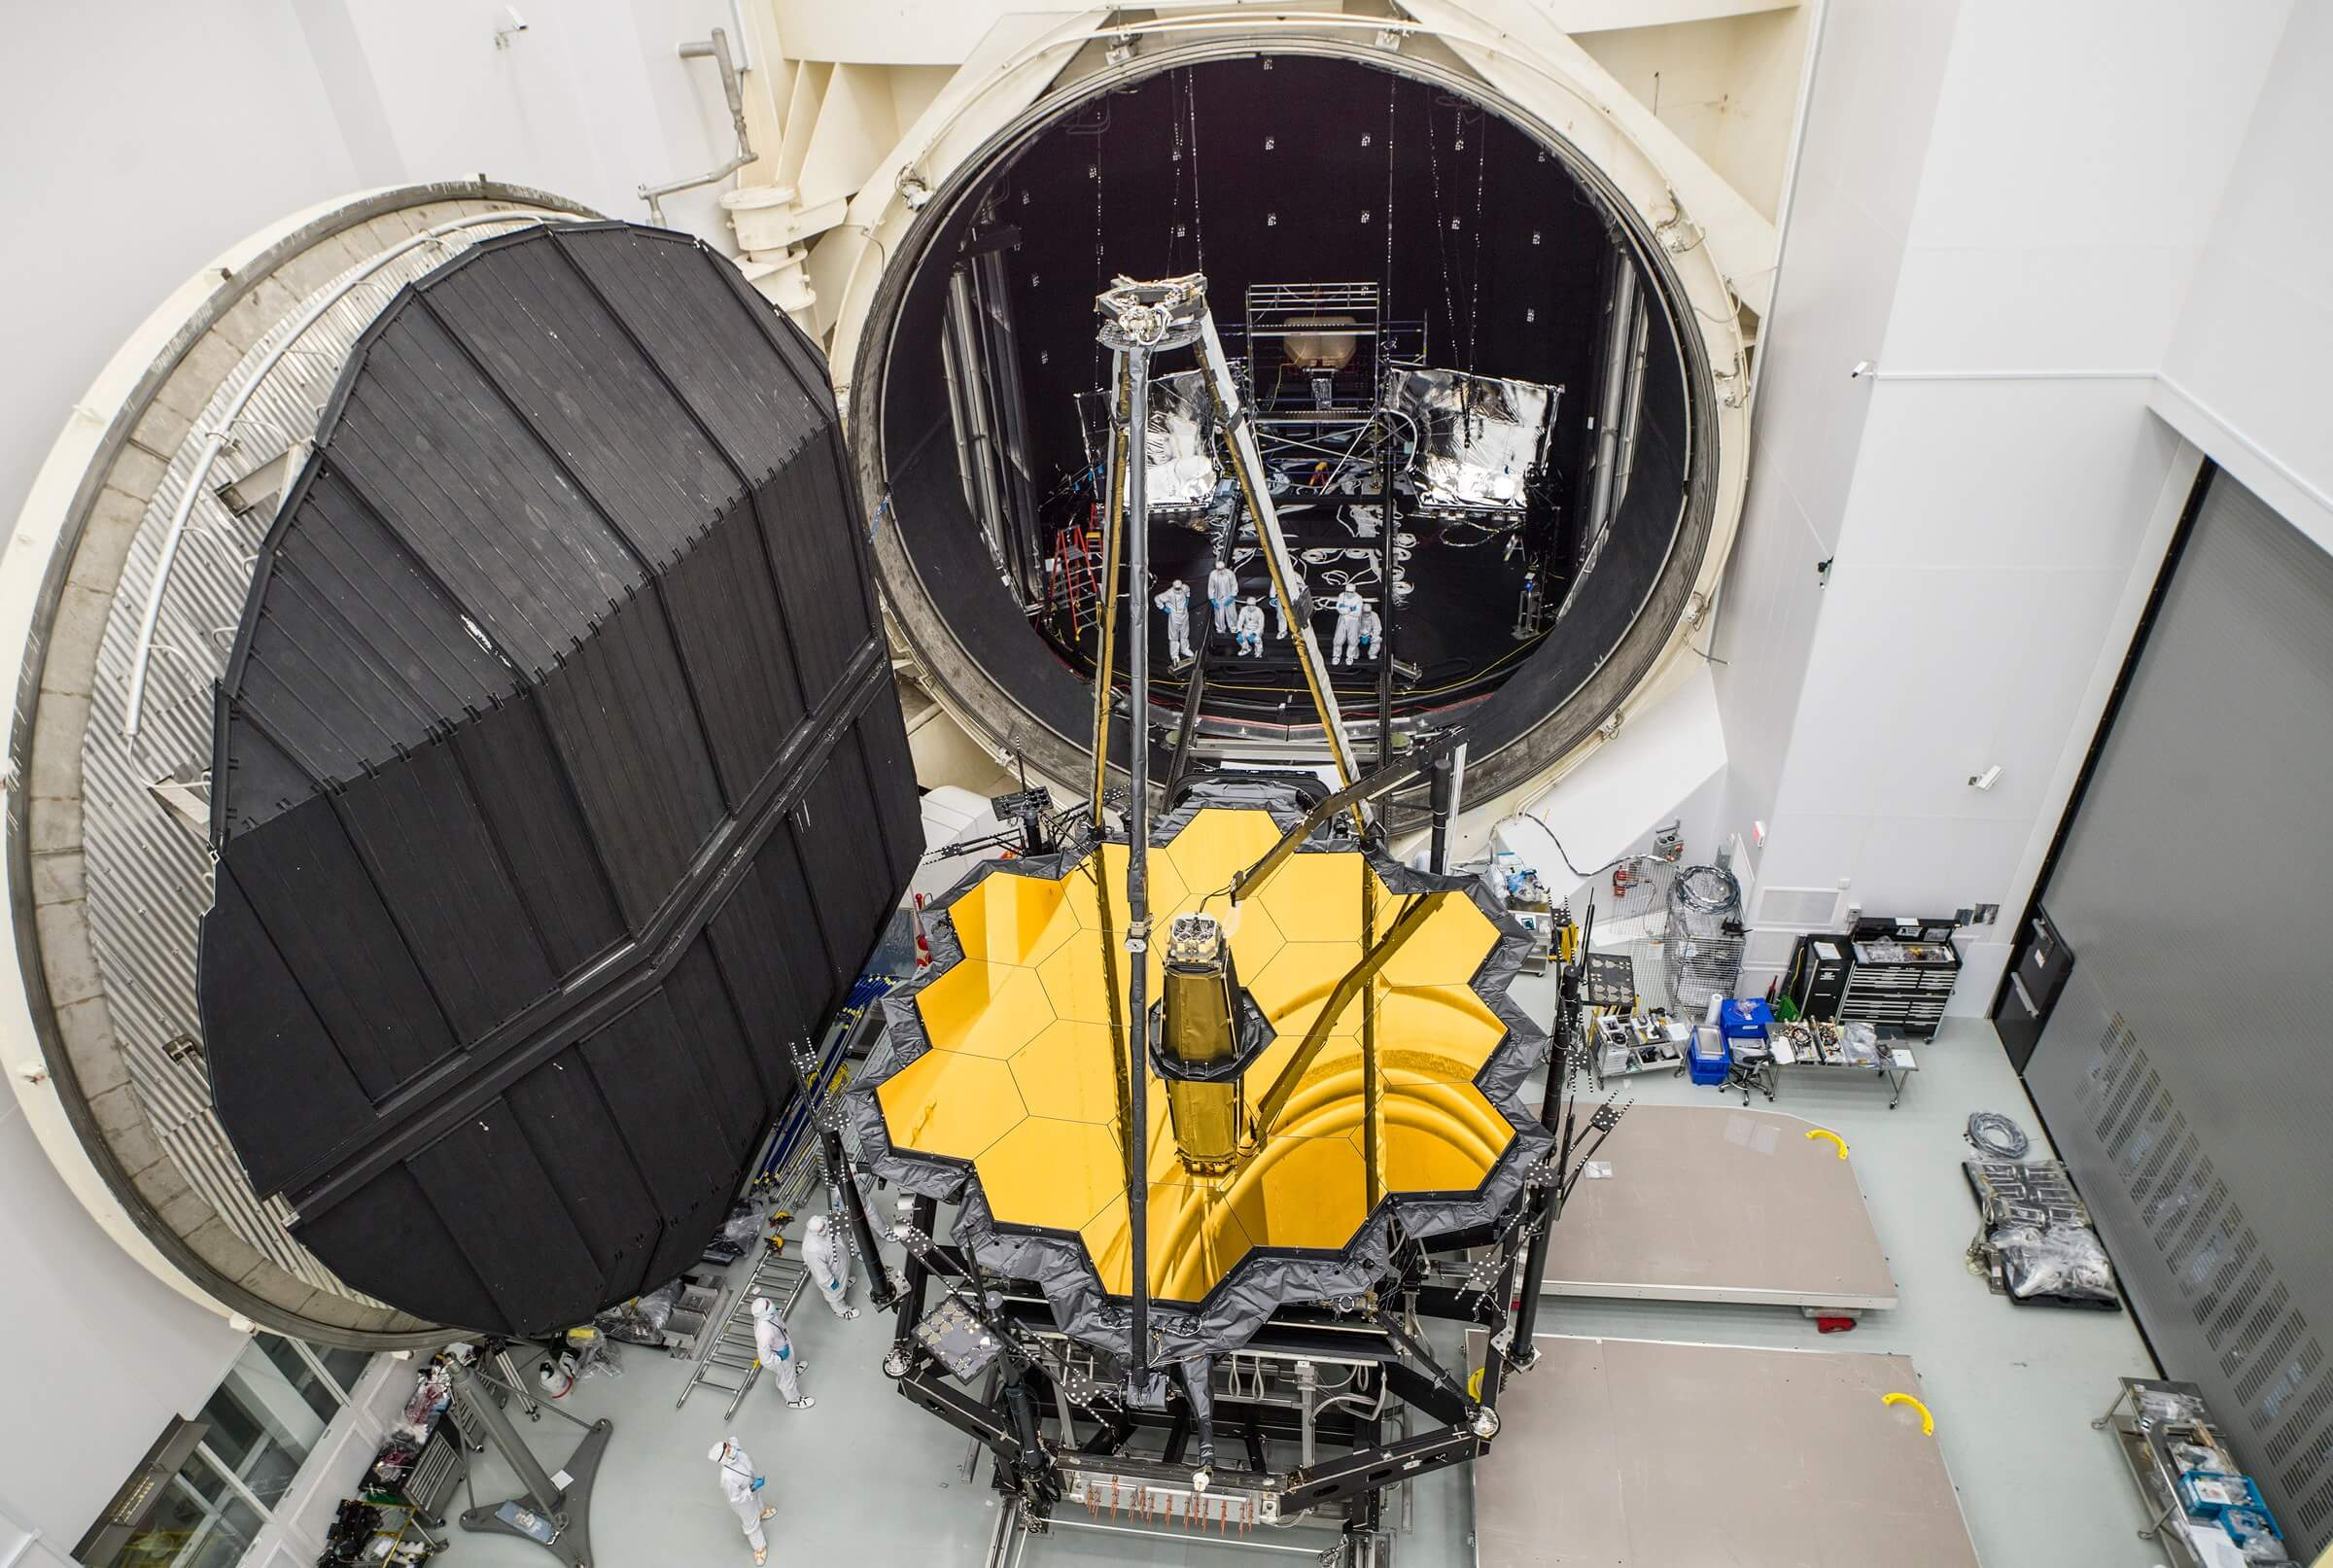 NASA's James Webb Space Telescope will likely miss its rescheduled launch date of March 2021